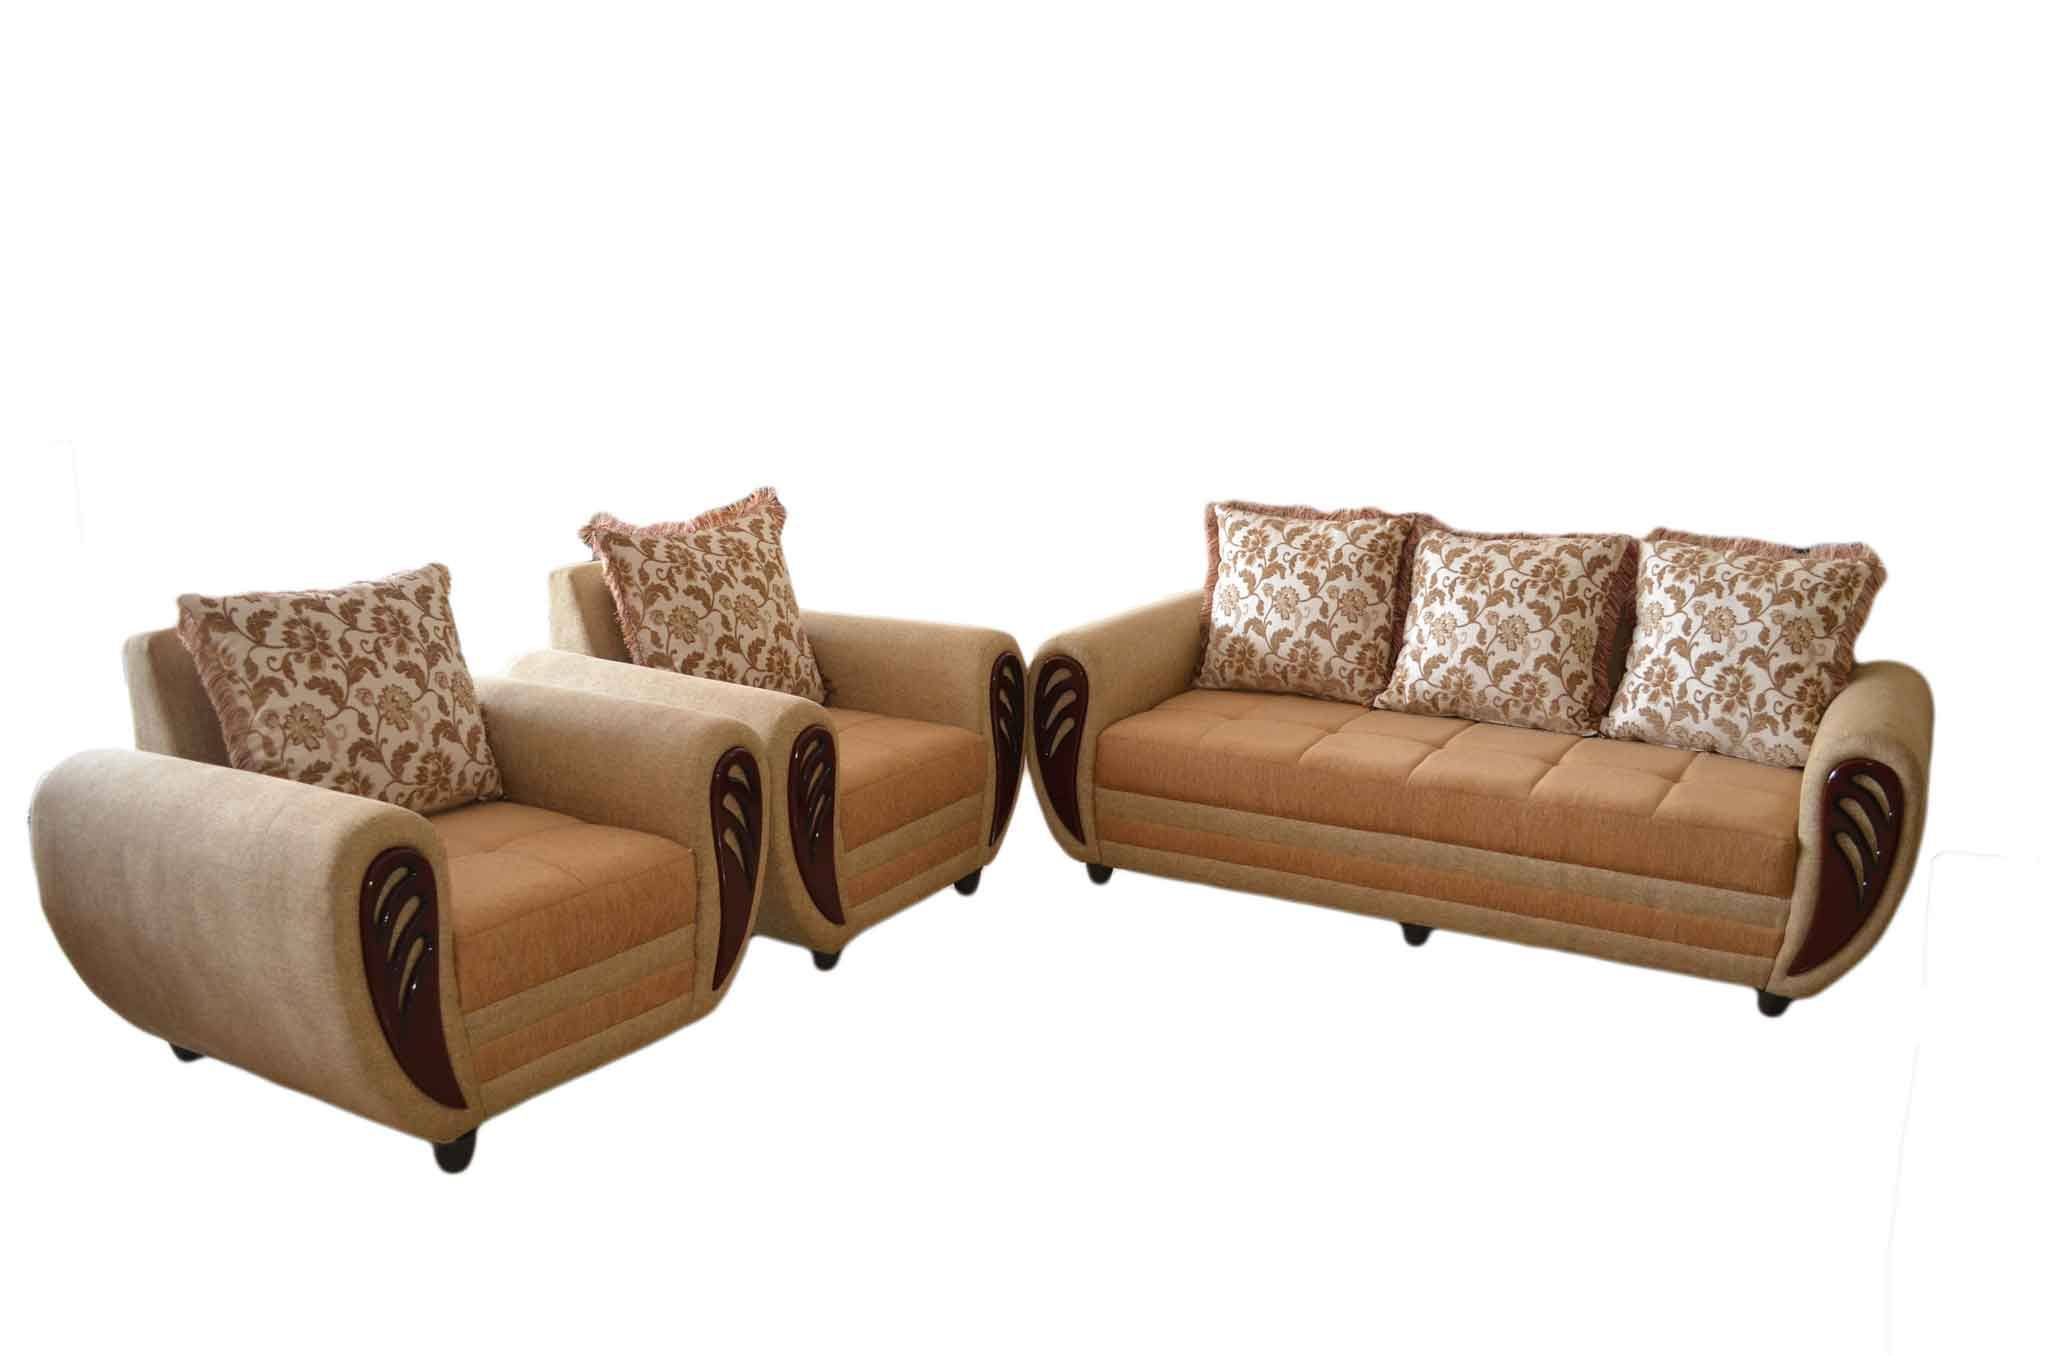 Kessna sofa set beige sofa sets online in hyderabad for Sofa set with settee